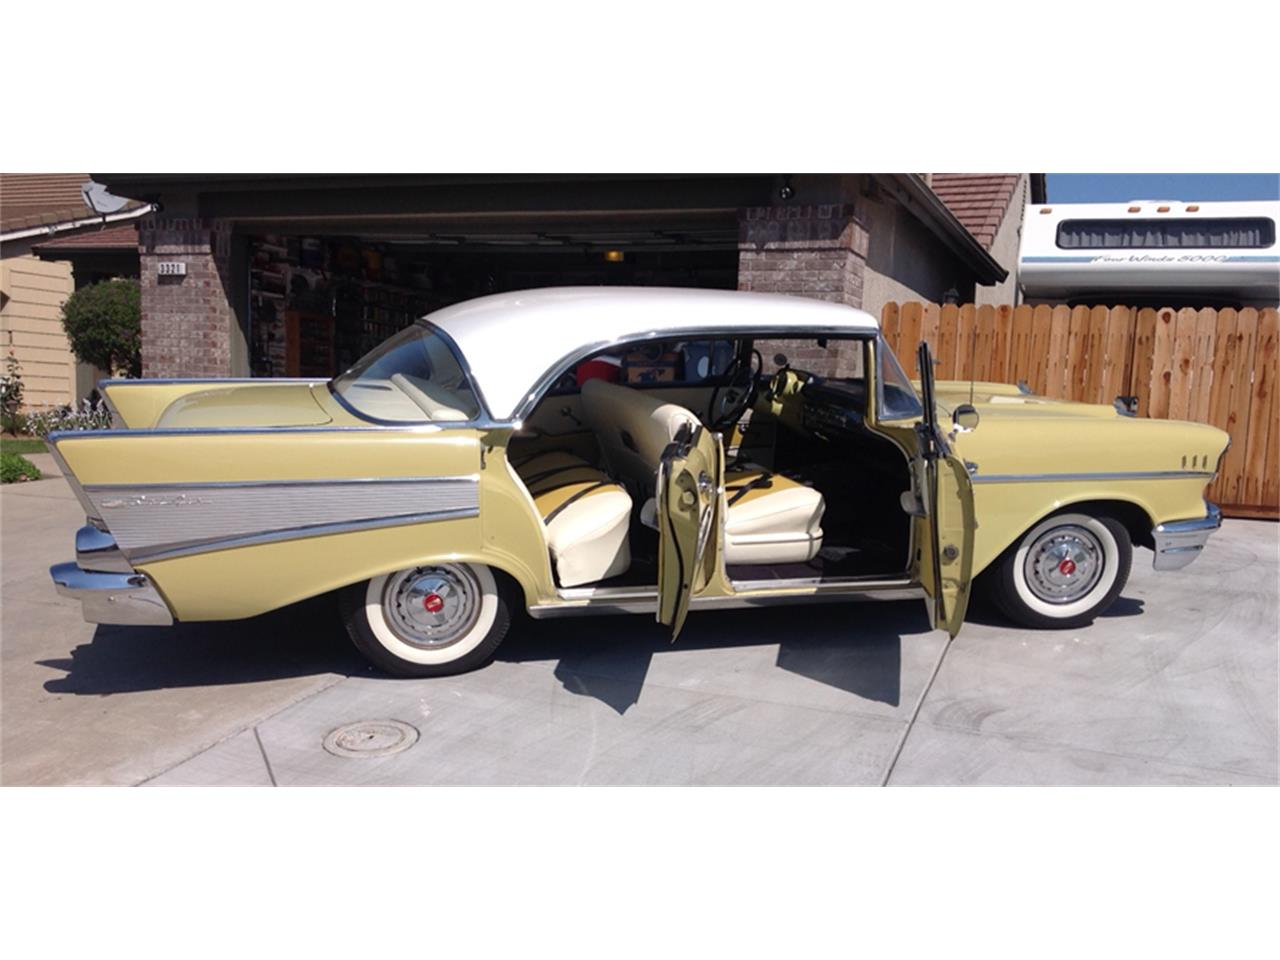 Large Picture of Classic '57 Bel Air located in Modesto California - $23,000.00 Offered by a Private Seller - KVN8